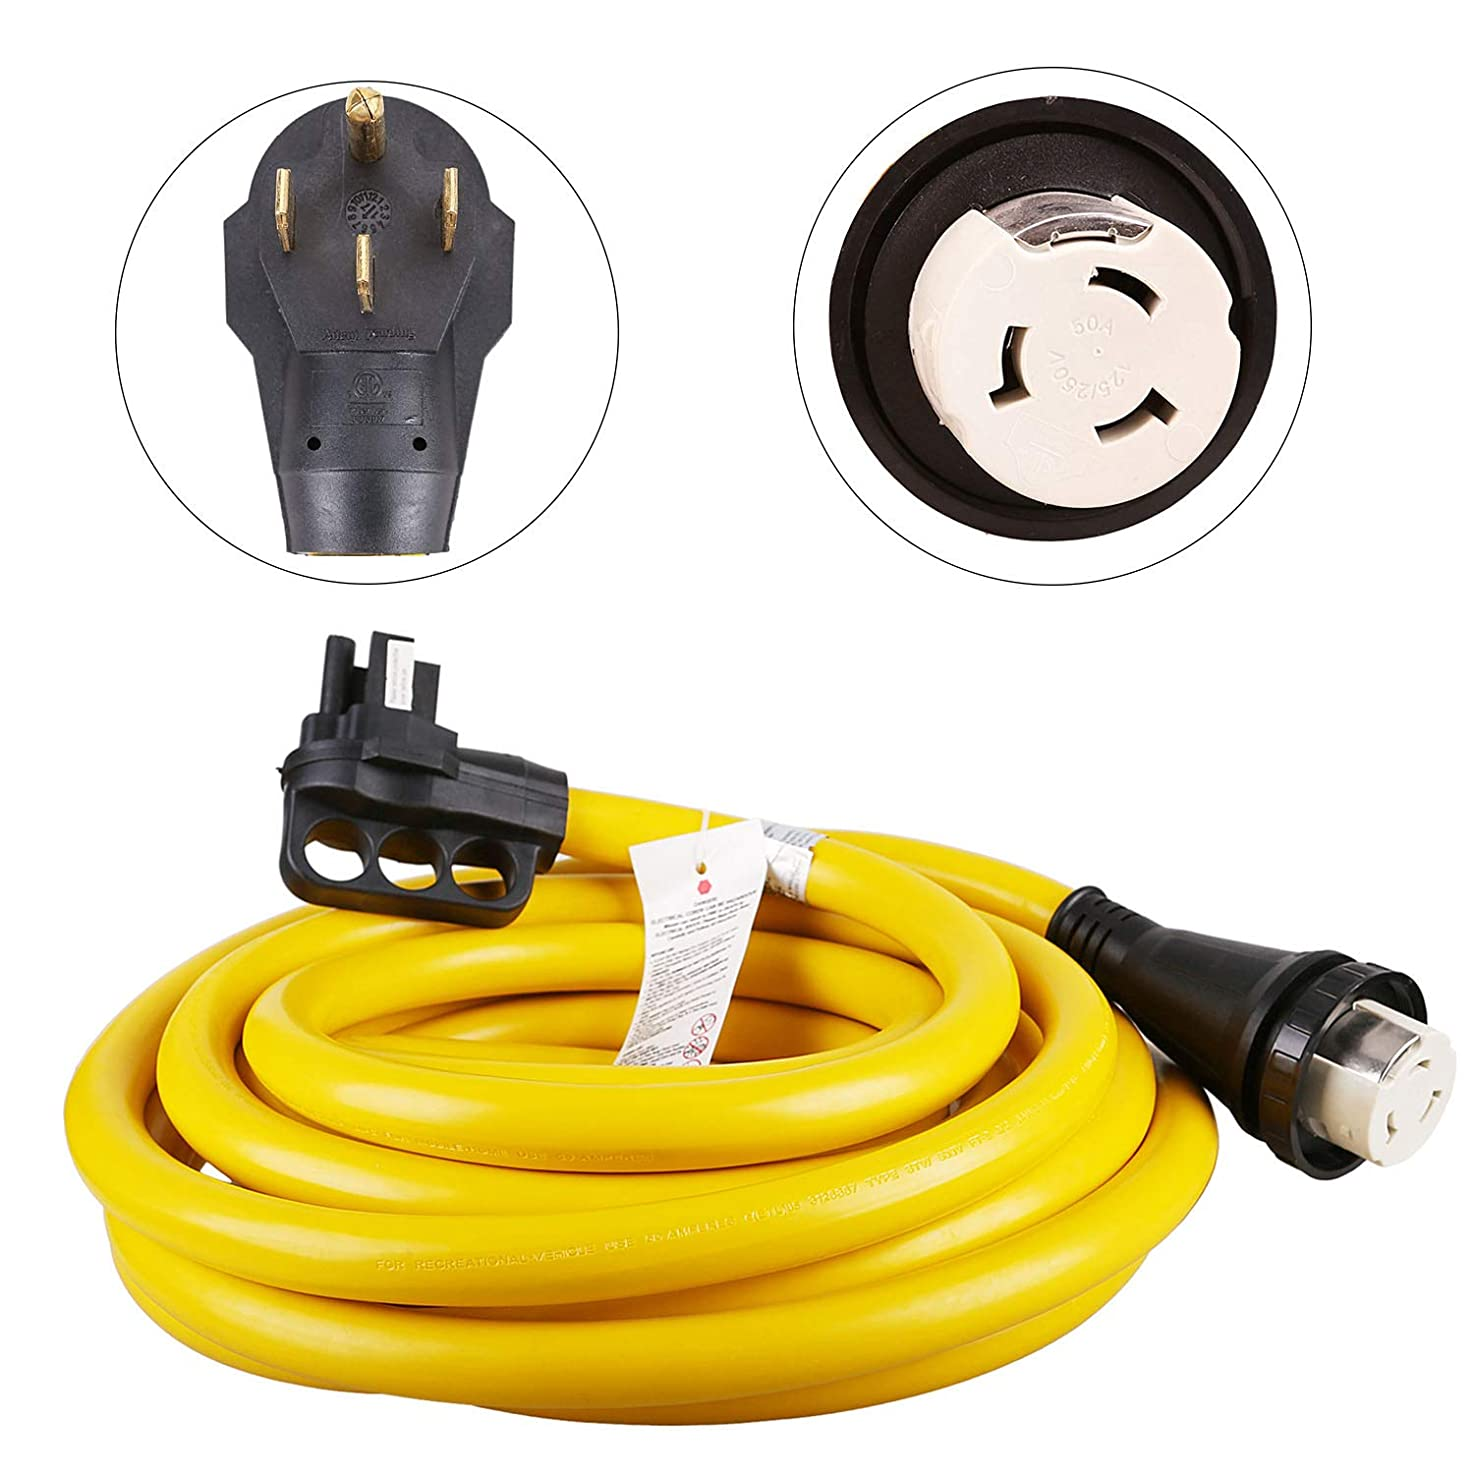 EPICORD 50 Amp Marine RV Power Cord with Hubbell Twist Lock Connector Detachable-30FT